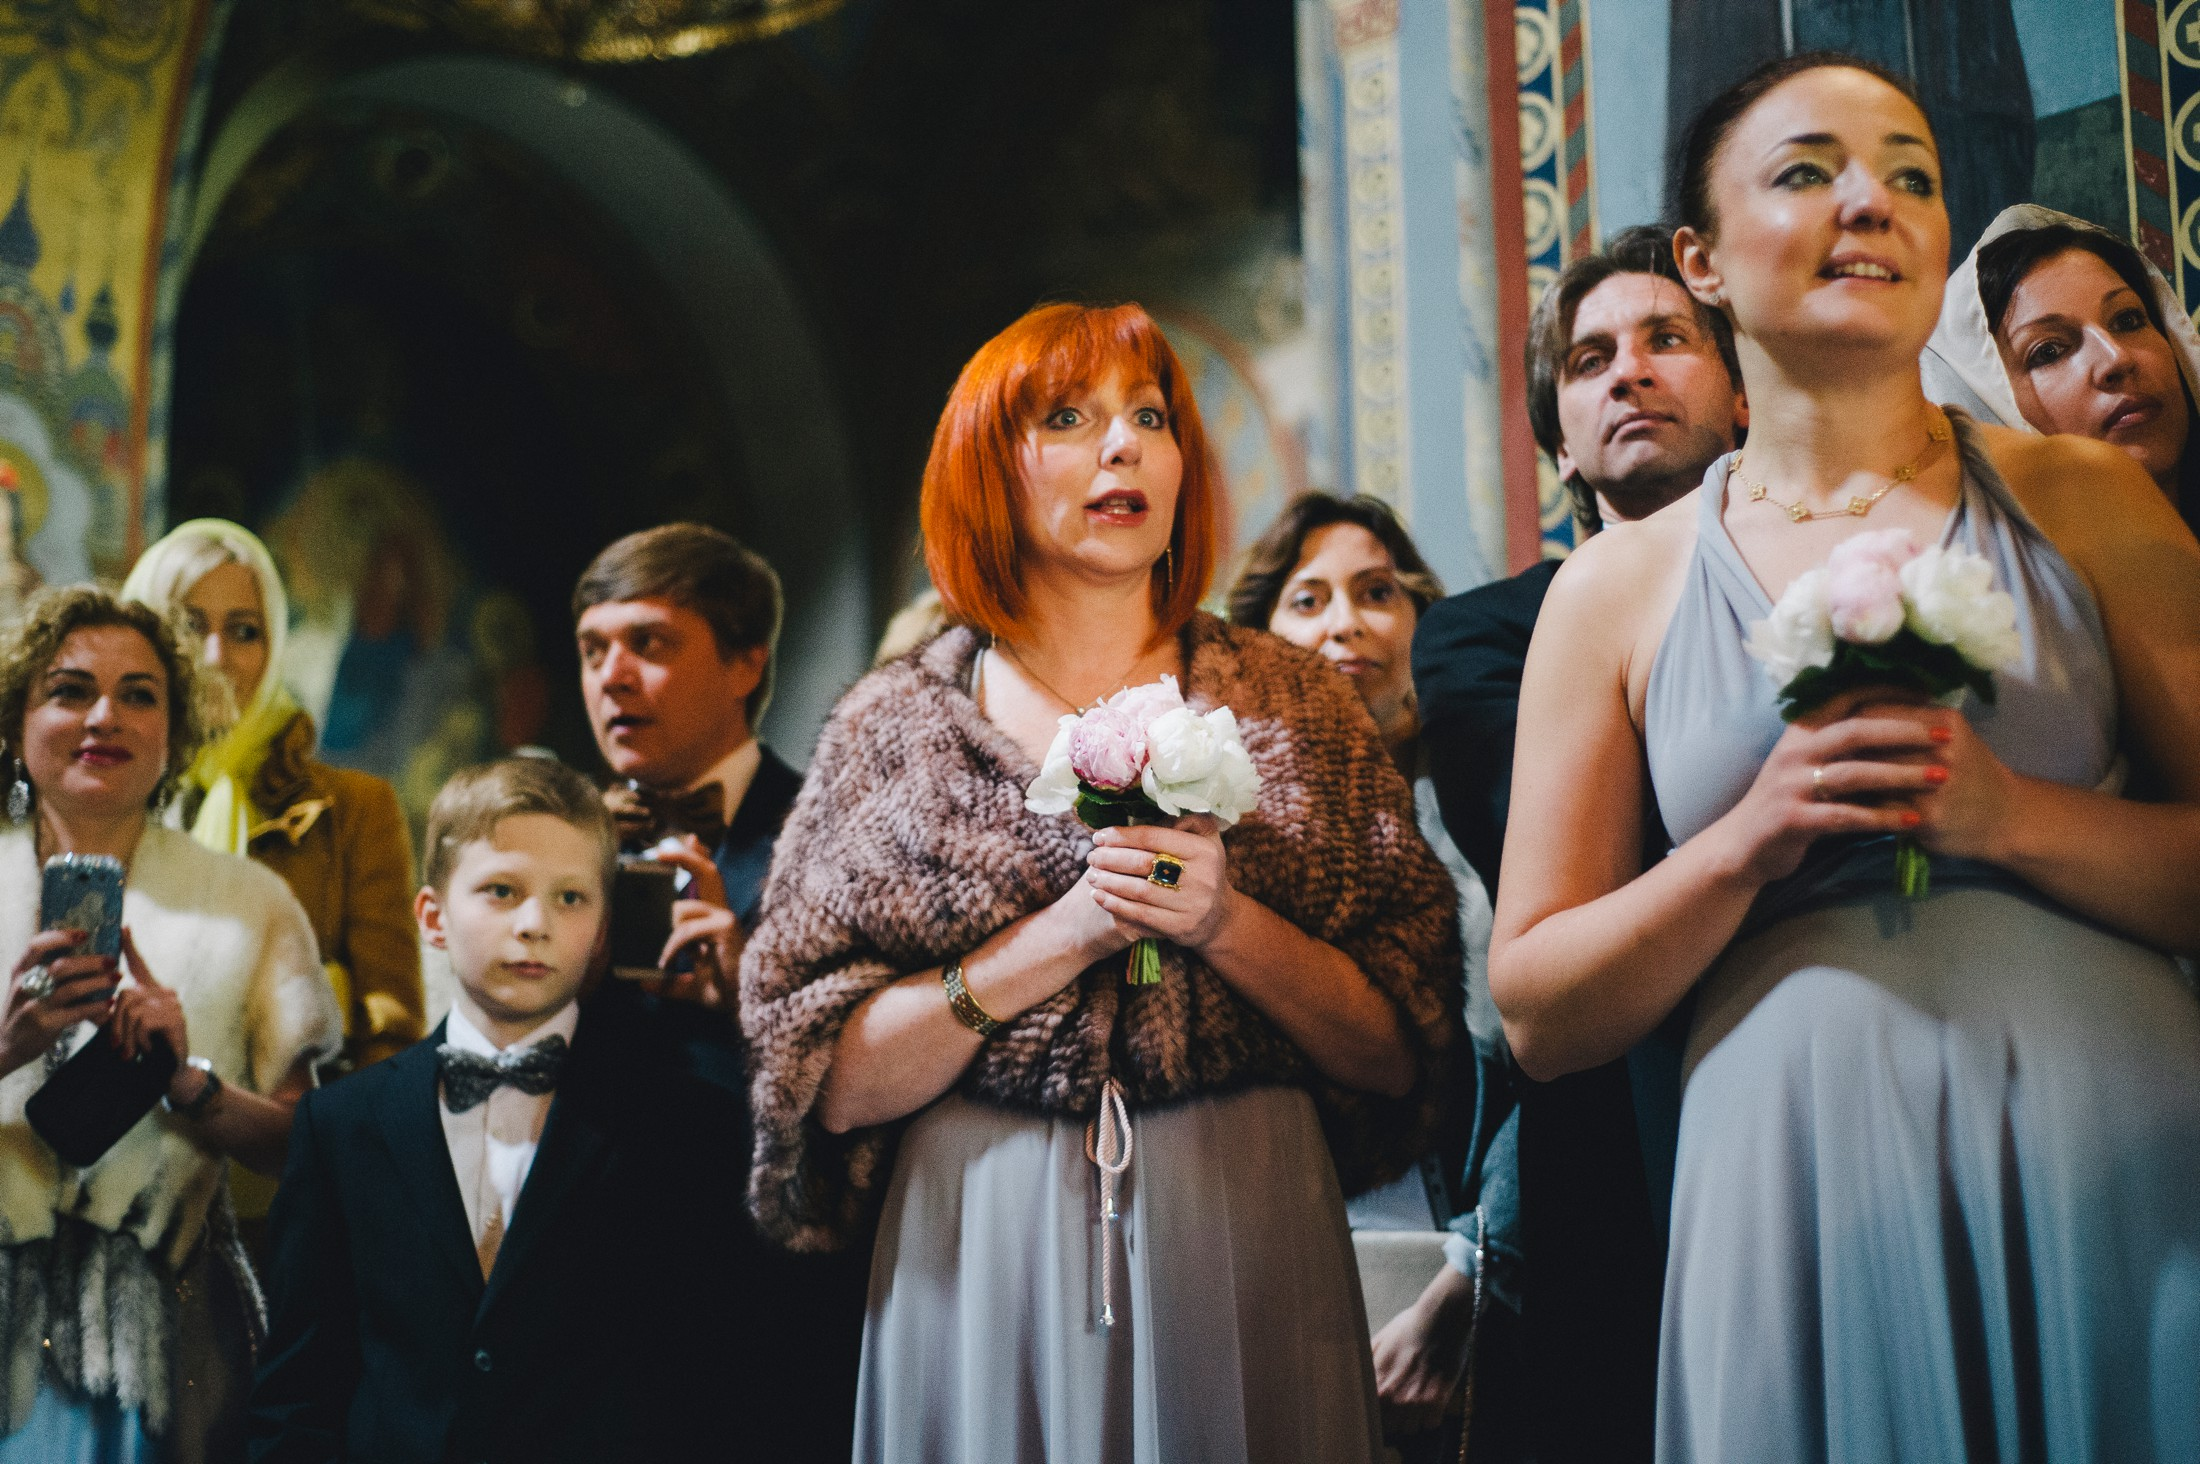 wedding guests during the wedding ceremony